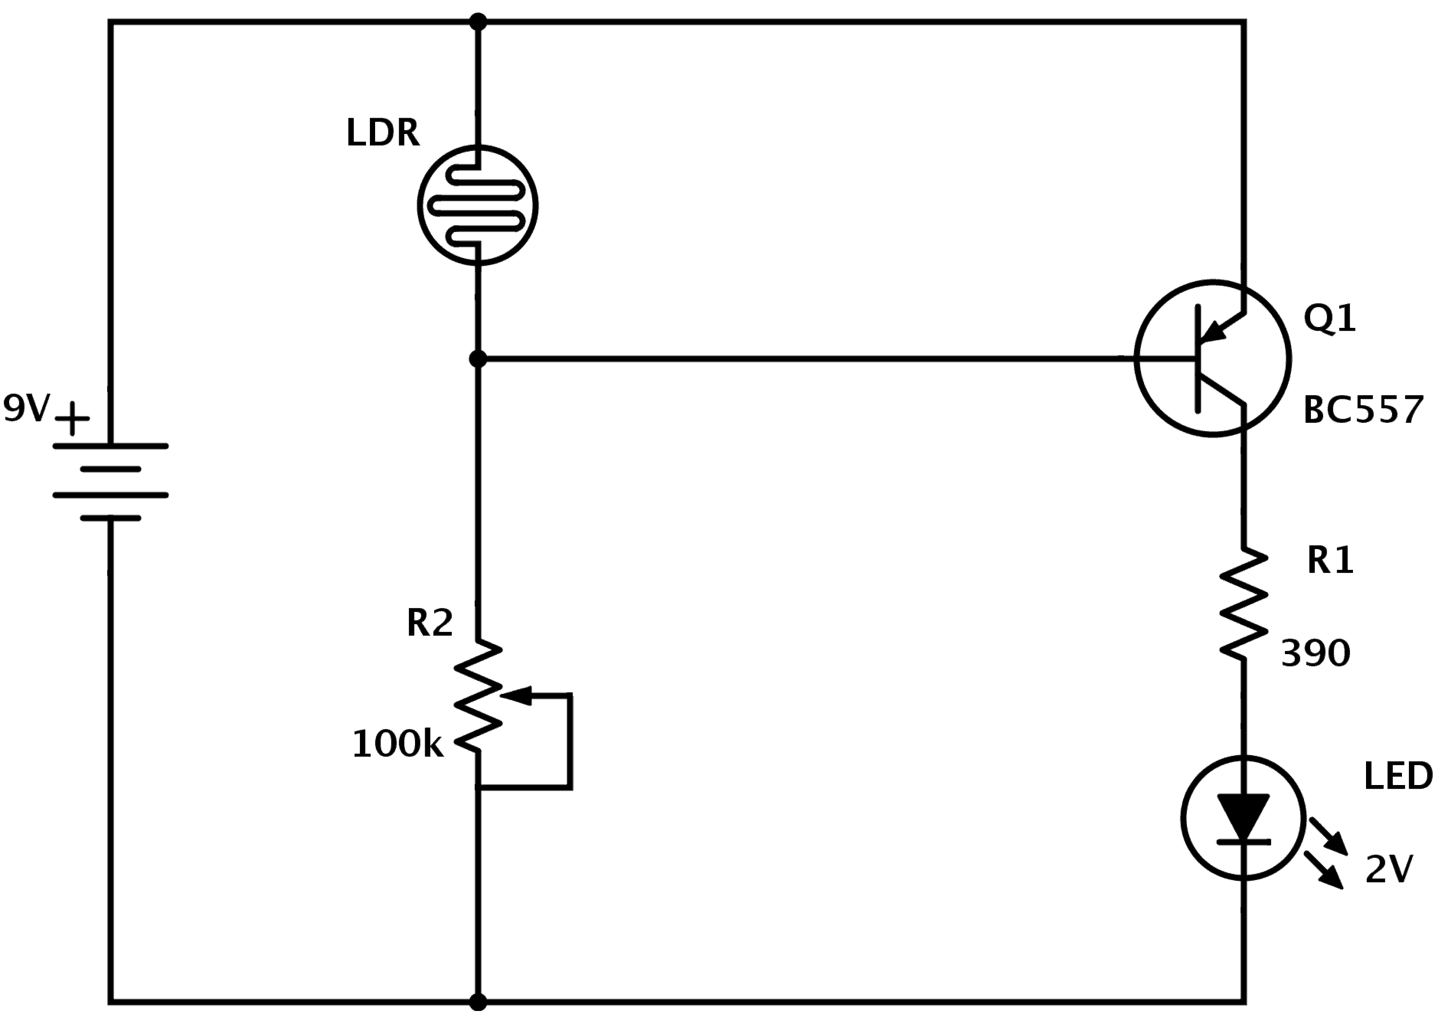 f103 ez go gas wiring harness diagram the potentiometer and wiring guide build electronic circuits ldr circuit dark detector